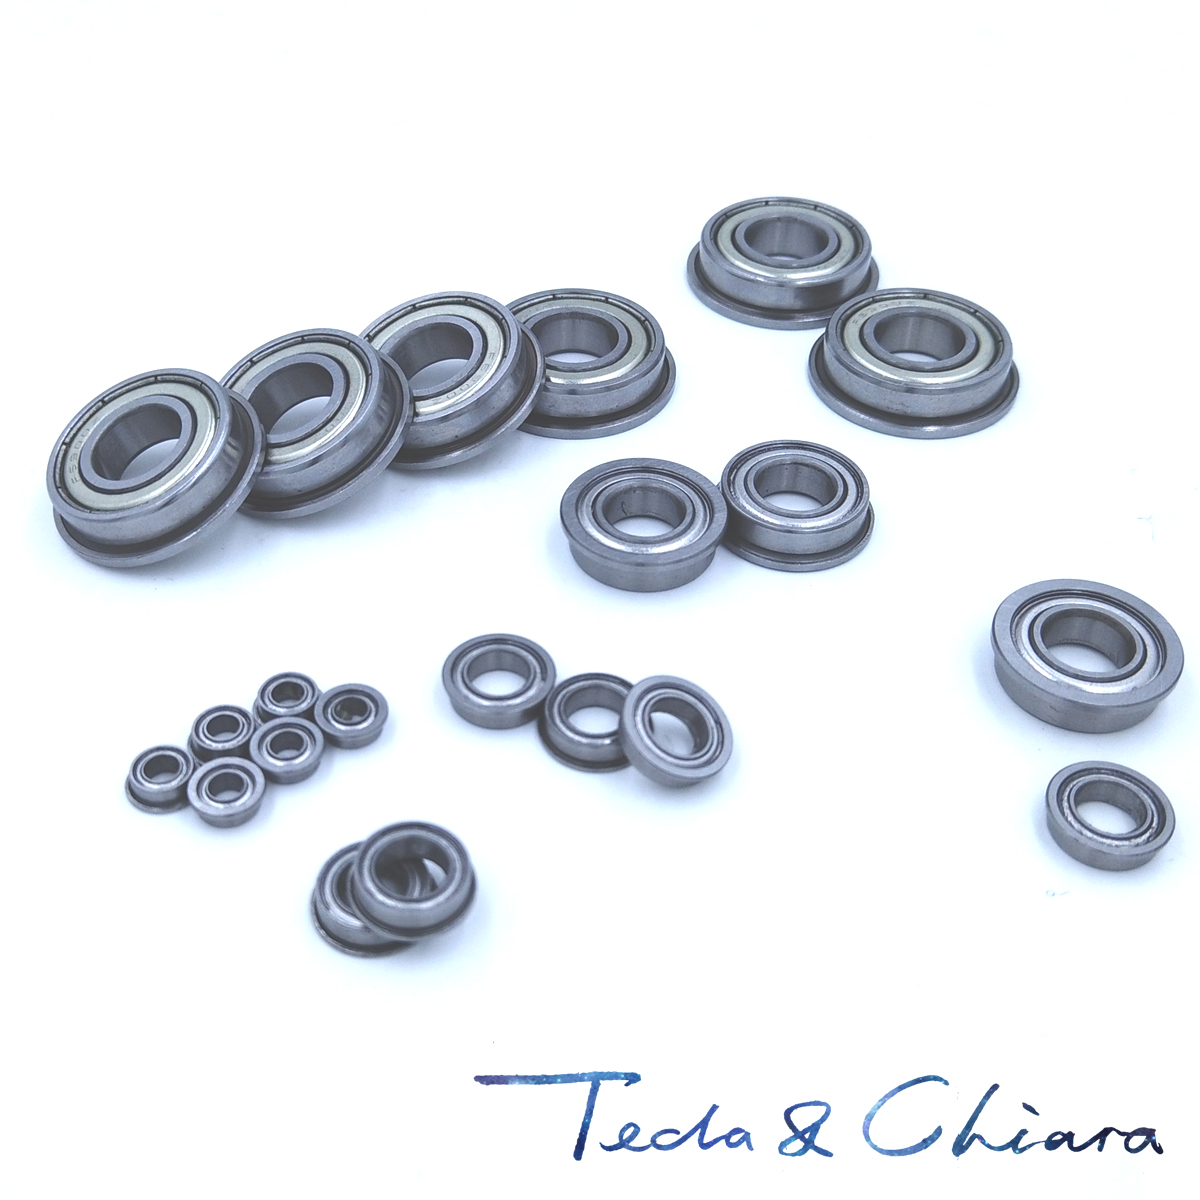 10Pcs 1Lot F683 F683-ZZ F683ZZ F683-2Z F683Z Zz Z 2z F638/3 DDLF730ZZ Flanged Flange Deep Groove Ball Bearings 3 X 7 X 3mm